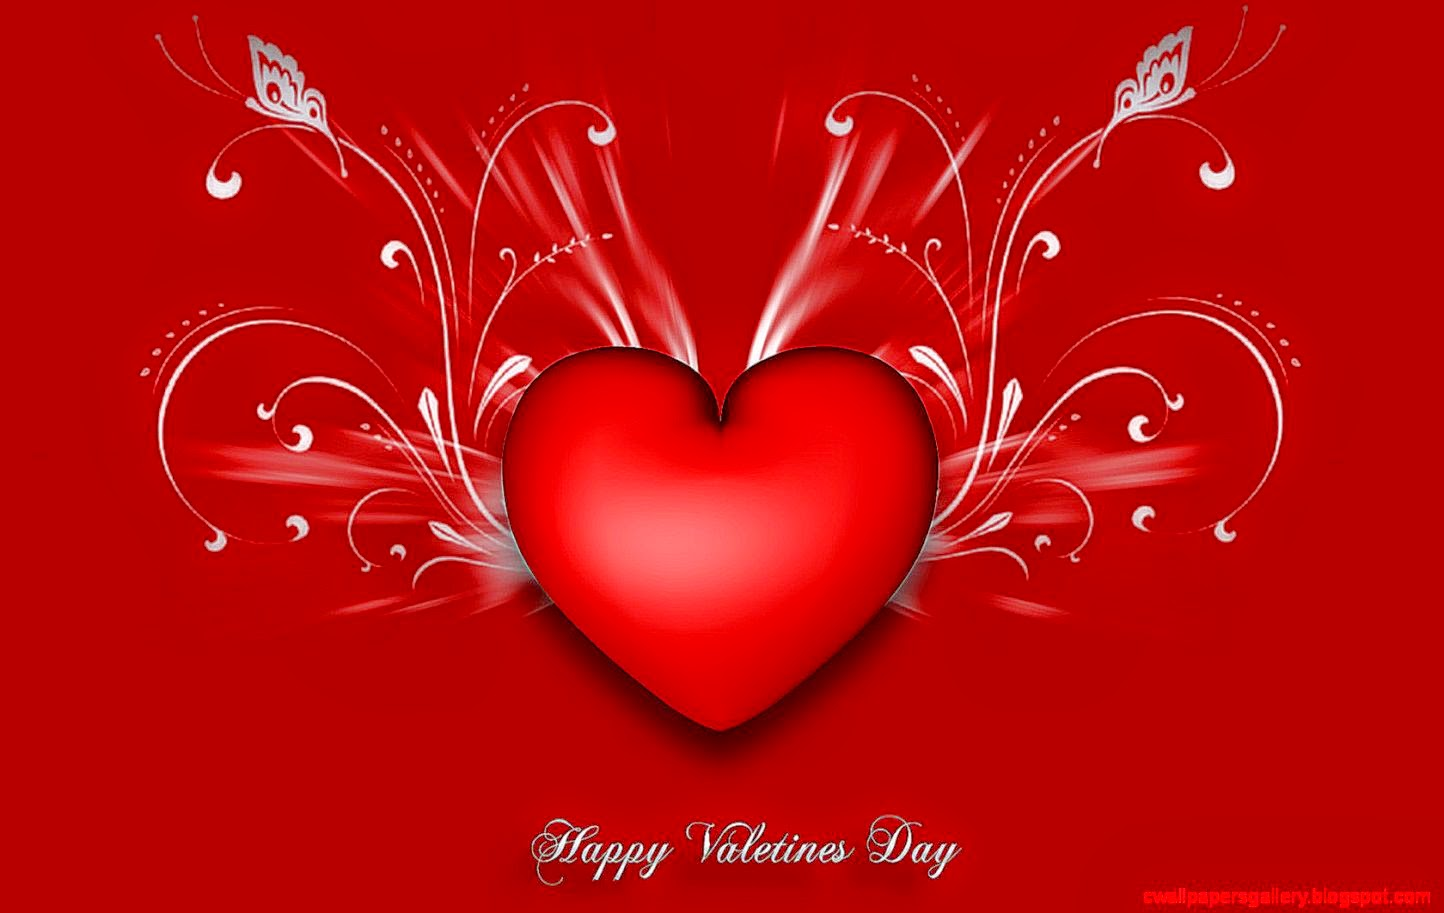 Valentine Heart Background Wallpaper Wallpapers Gallery 1444x913